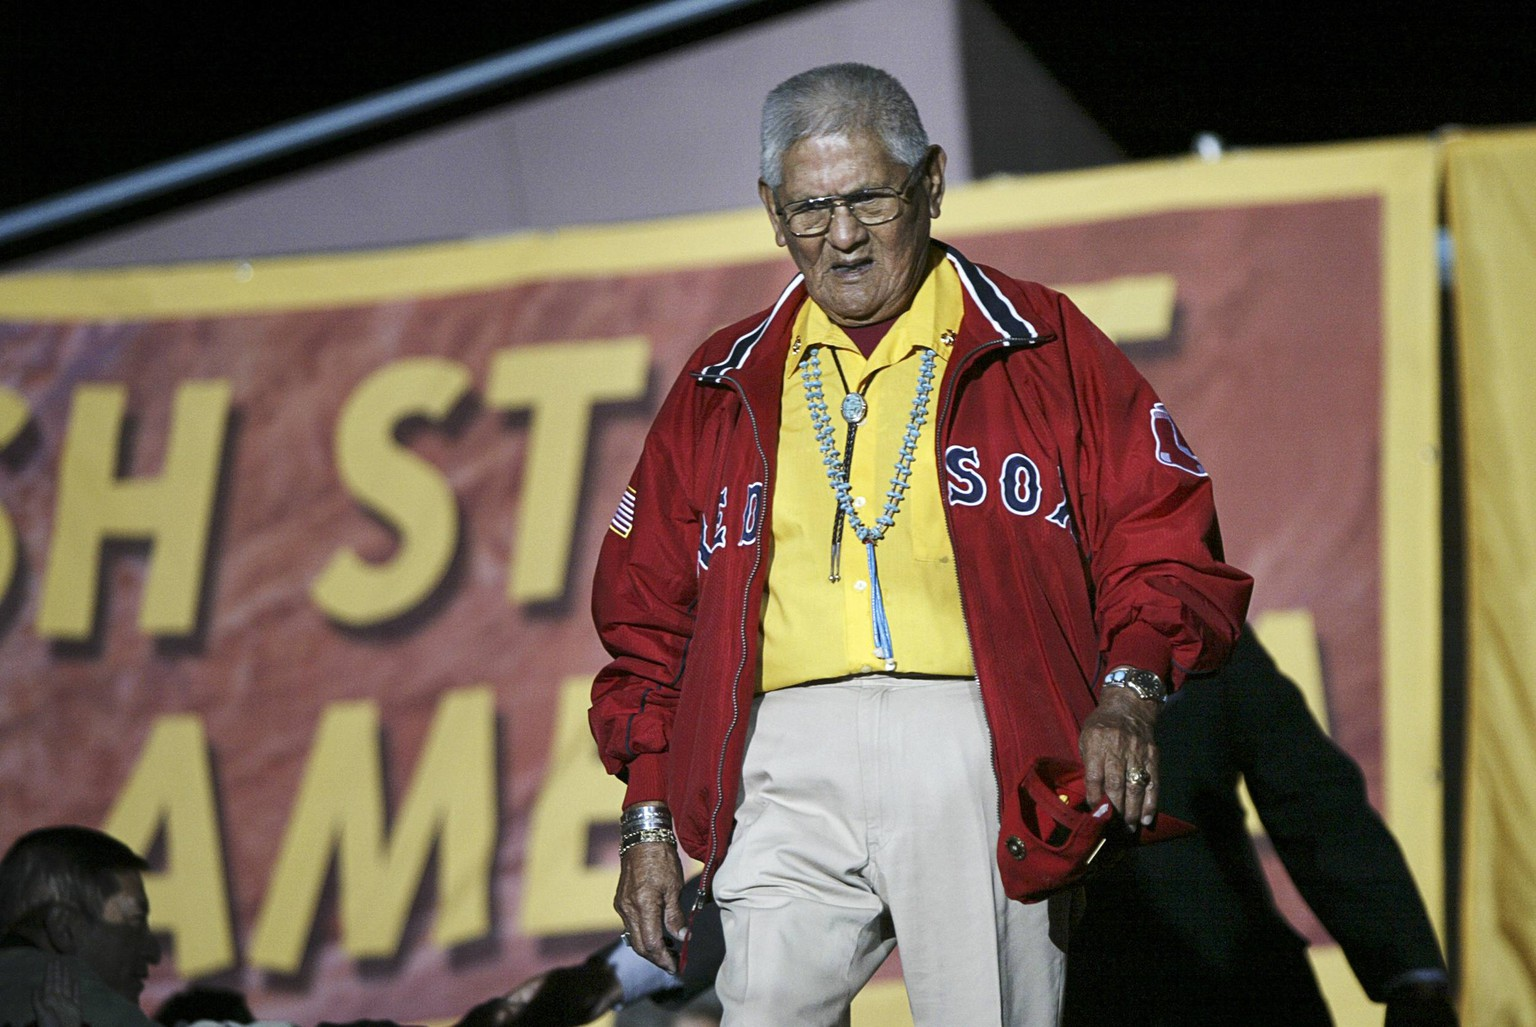 World War II Navajo code talker Chester Nez takes the stage at a campaign rally with Democratic presidential nominee John Kerry in Albuquerque, New Mexico in this October 26, 2004 file photo.  Nez, the last of 29 Navajo Americans who developed a code that helped Allied forces win the second World War died in New Mexico June 4, 2014 at the age of 93, according to local media reports. REUTERS/Brian Snyder/Files  (UNITED STATES - Tags: SOCIETY MILITARY)